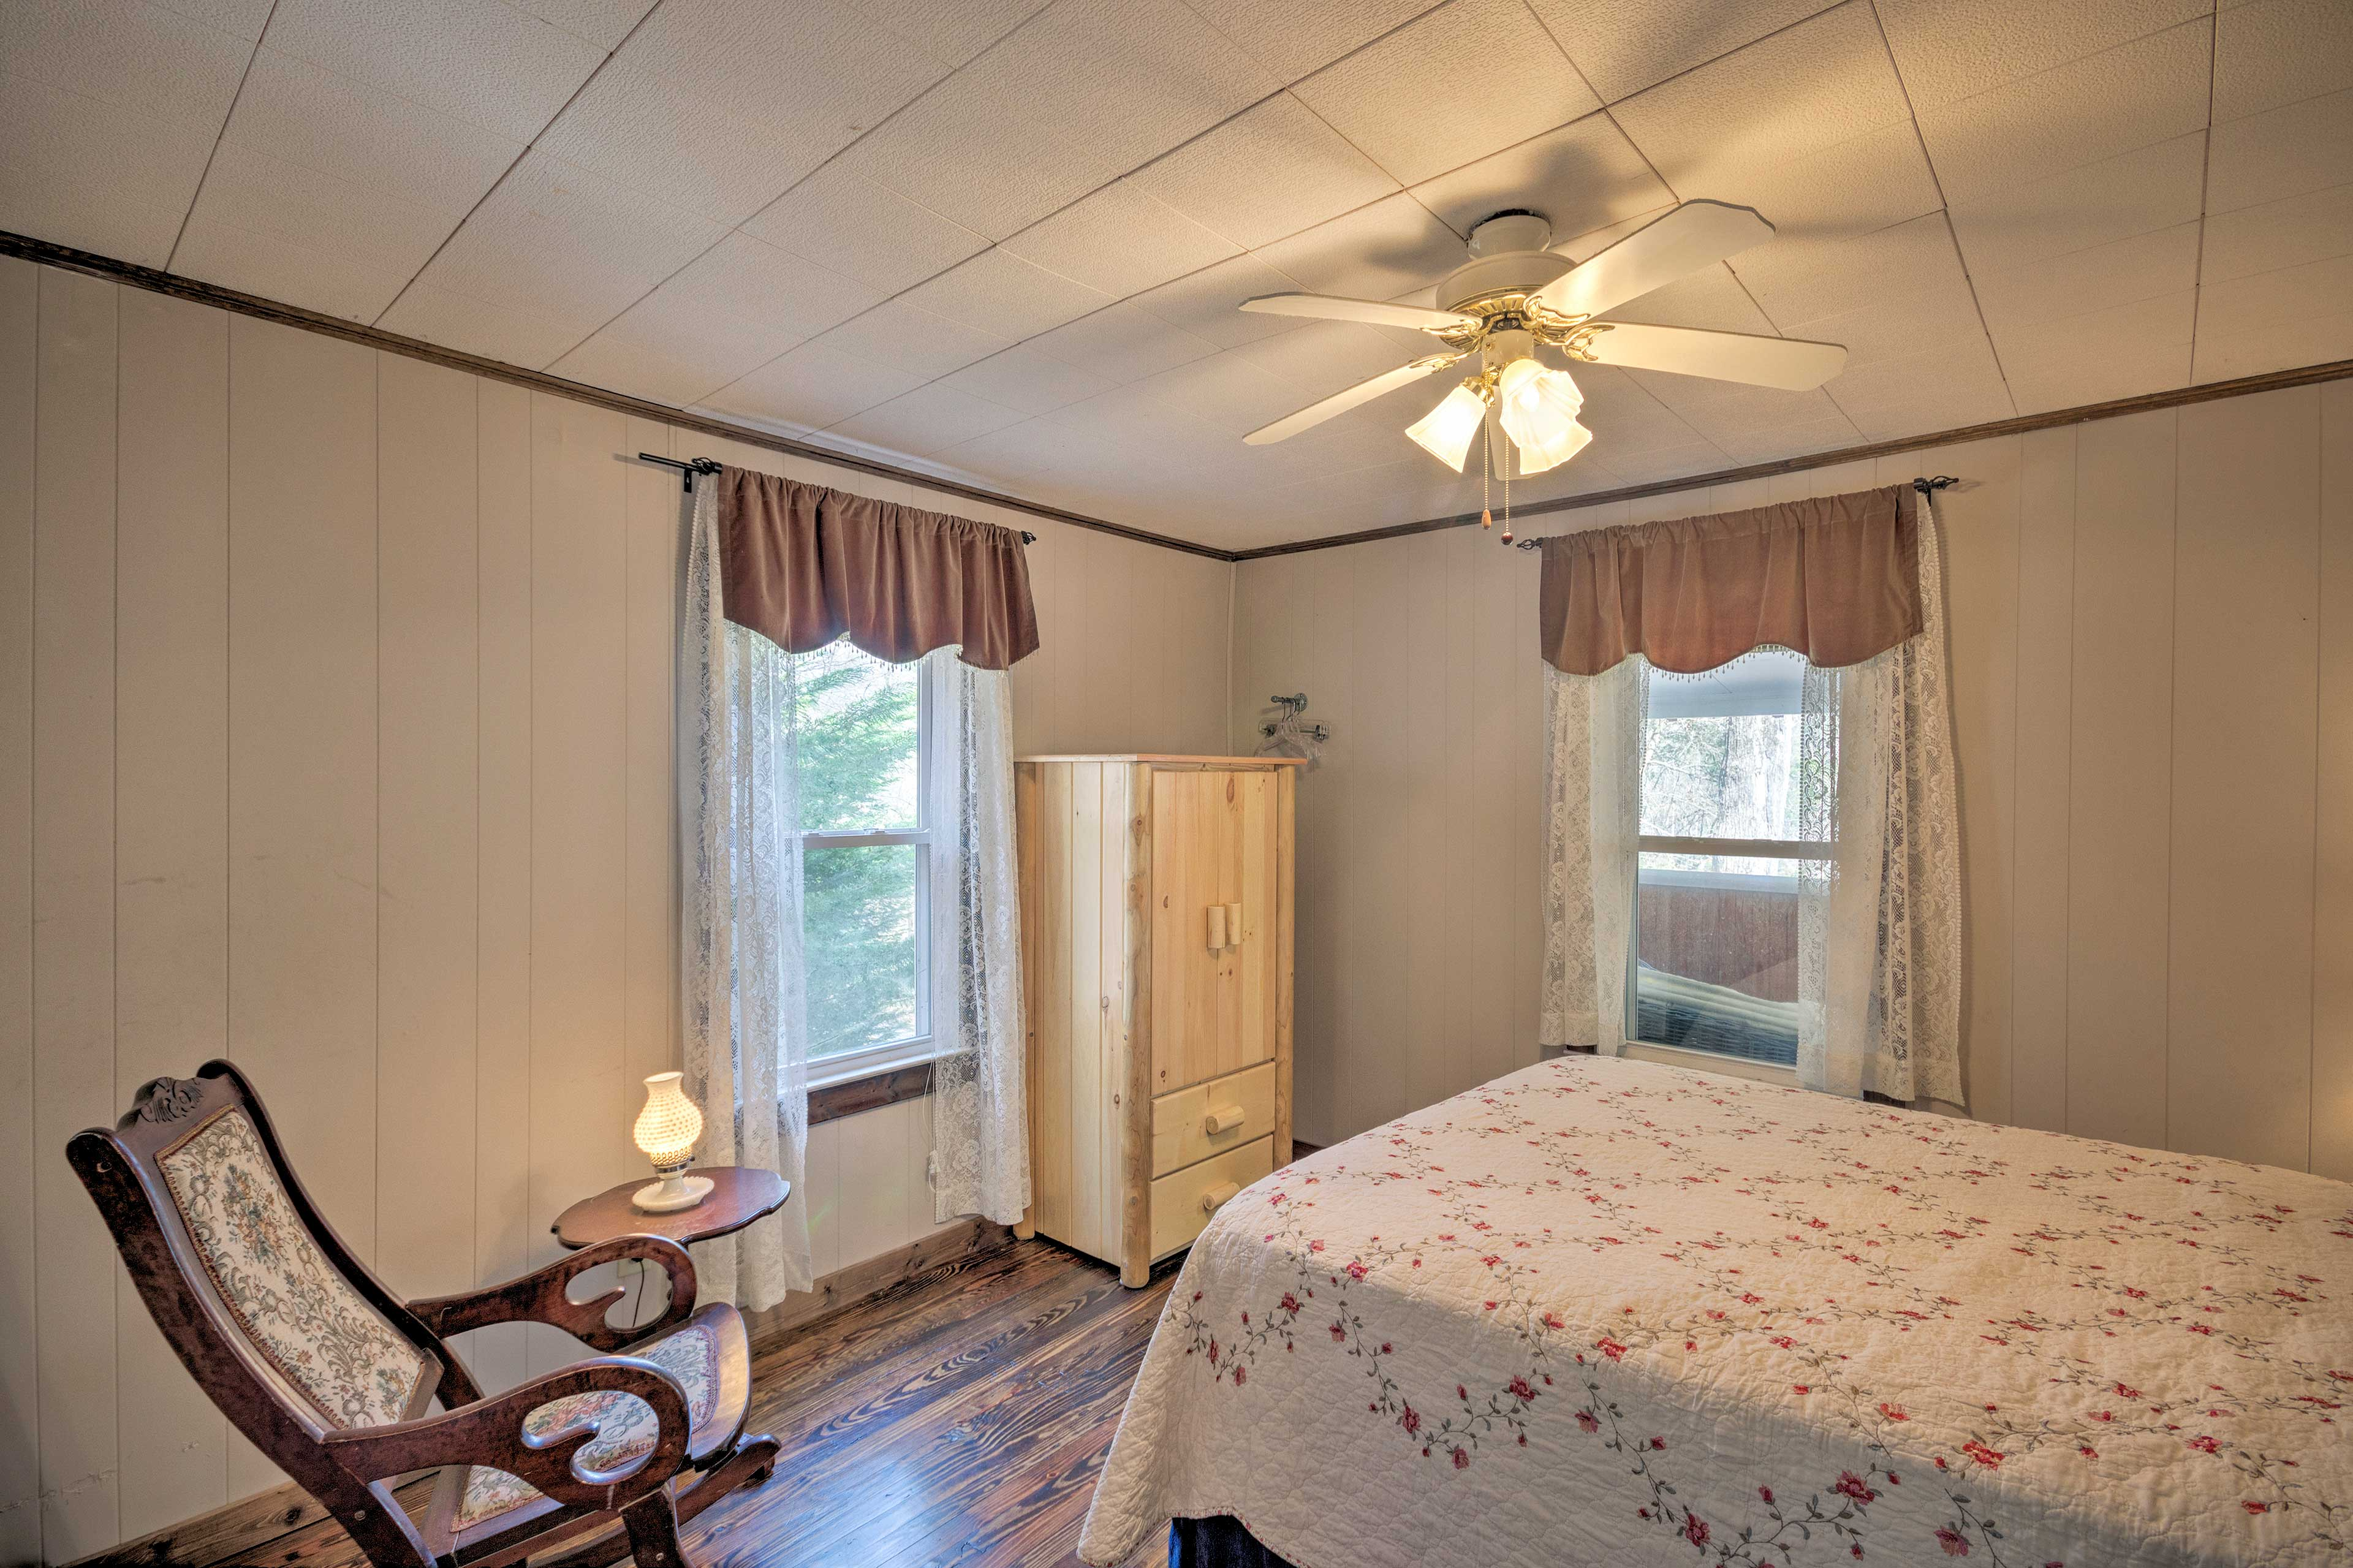 You'll fall asleep with ease in the airy bedroom!